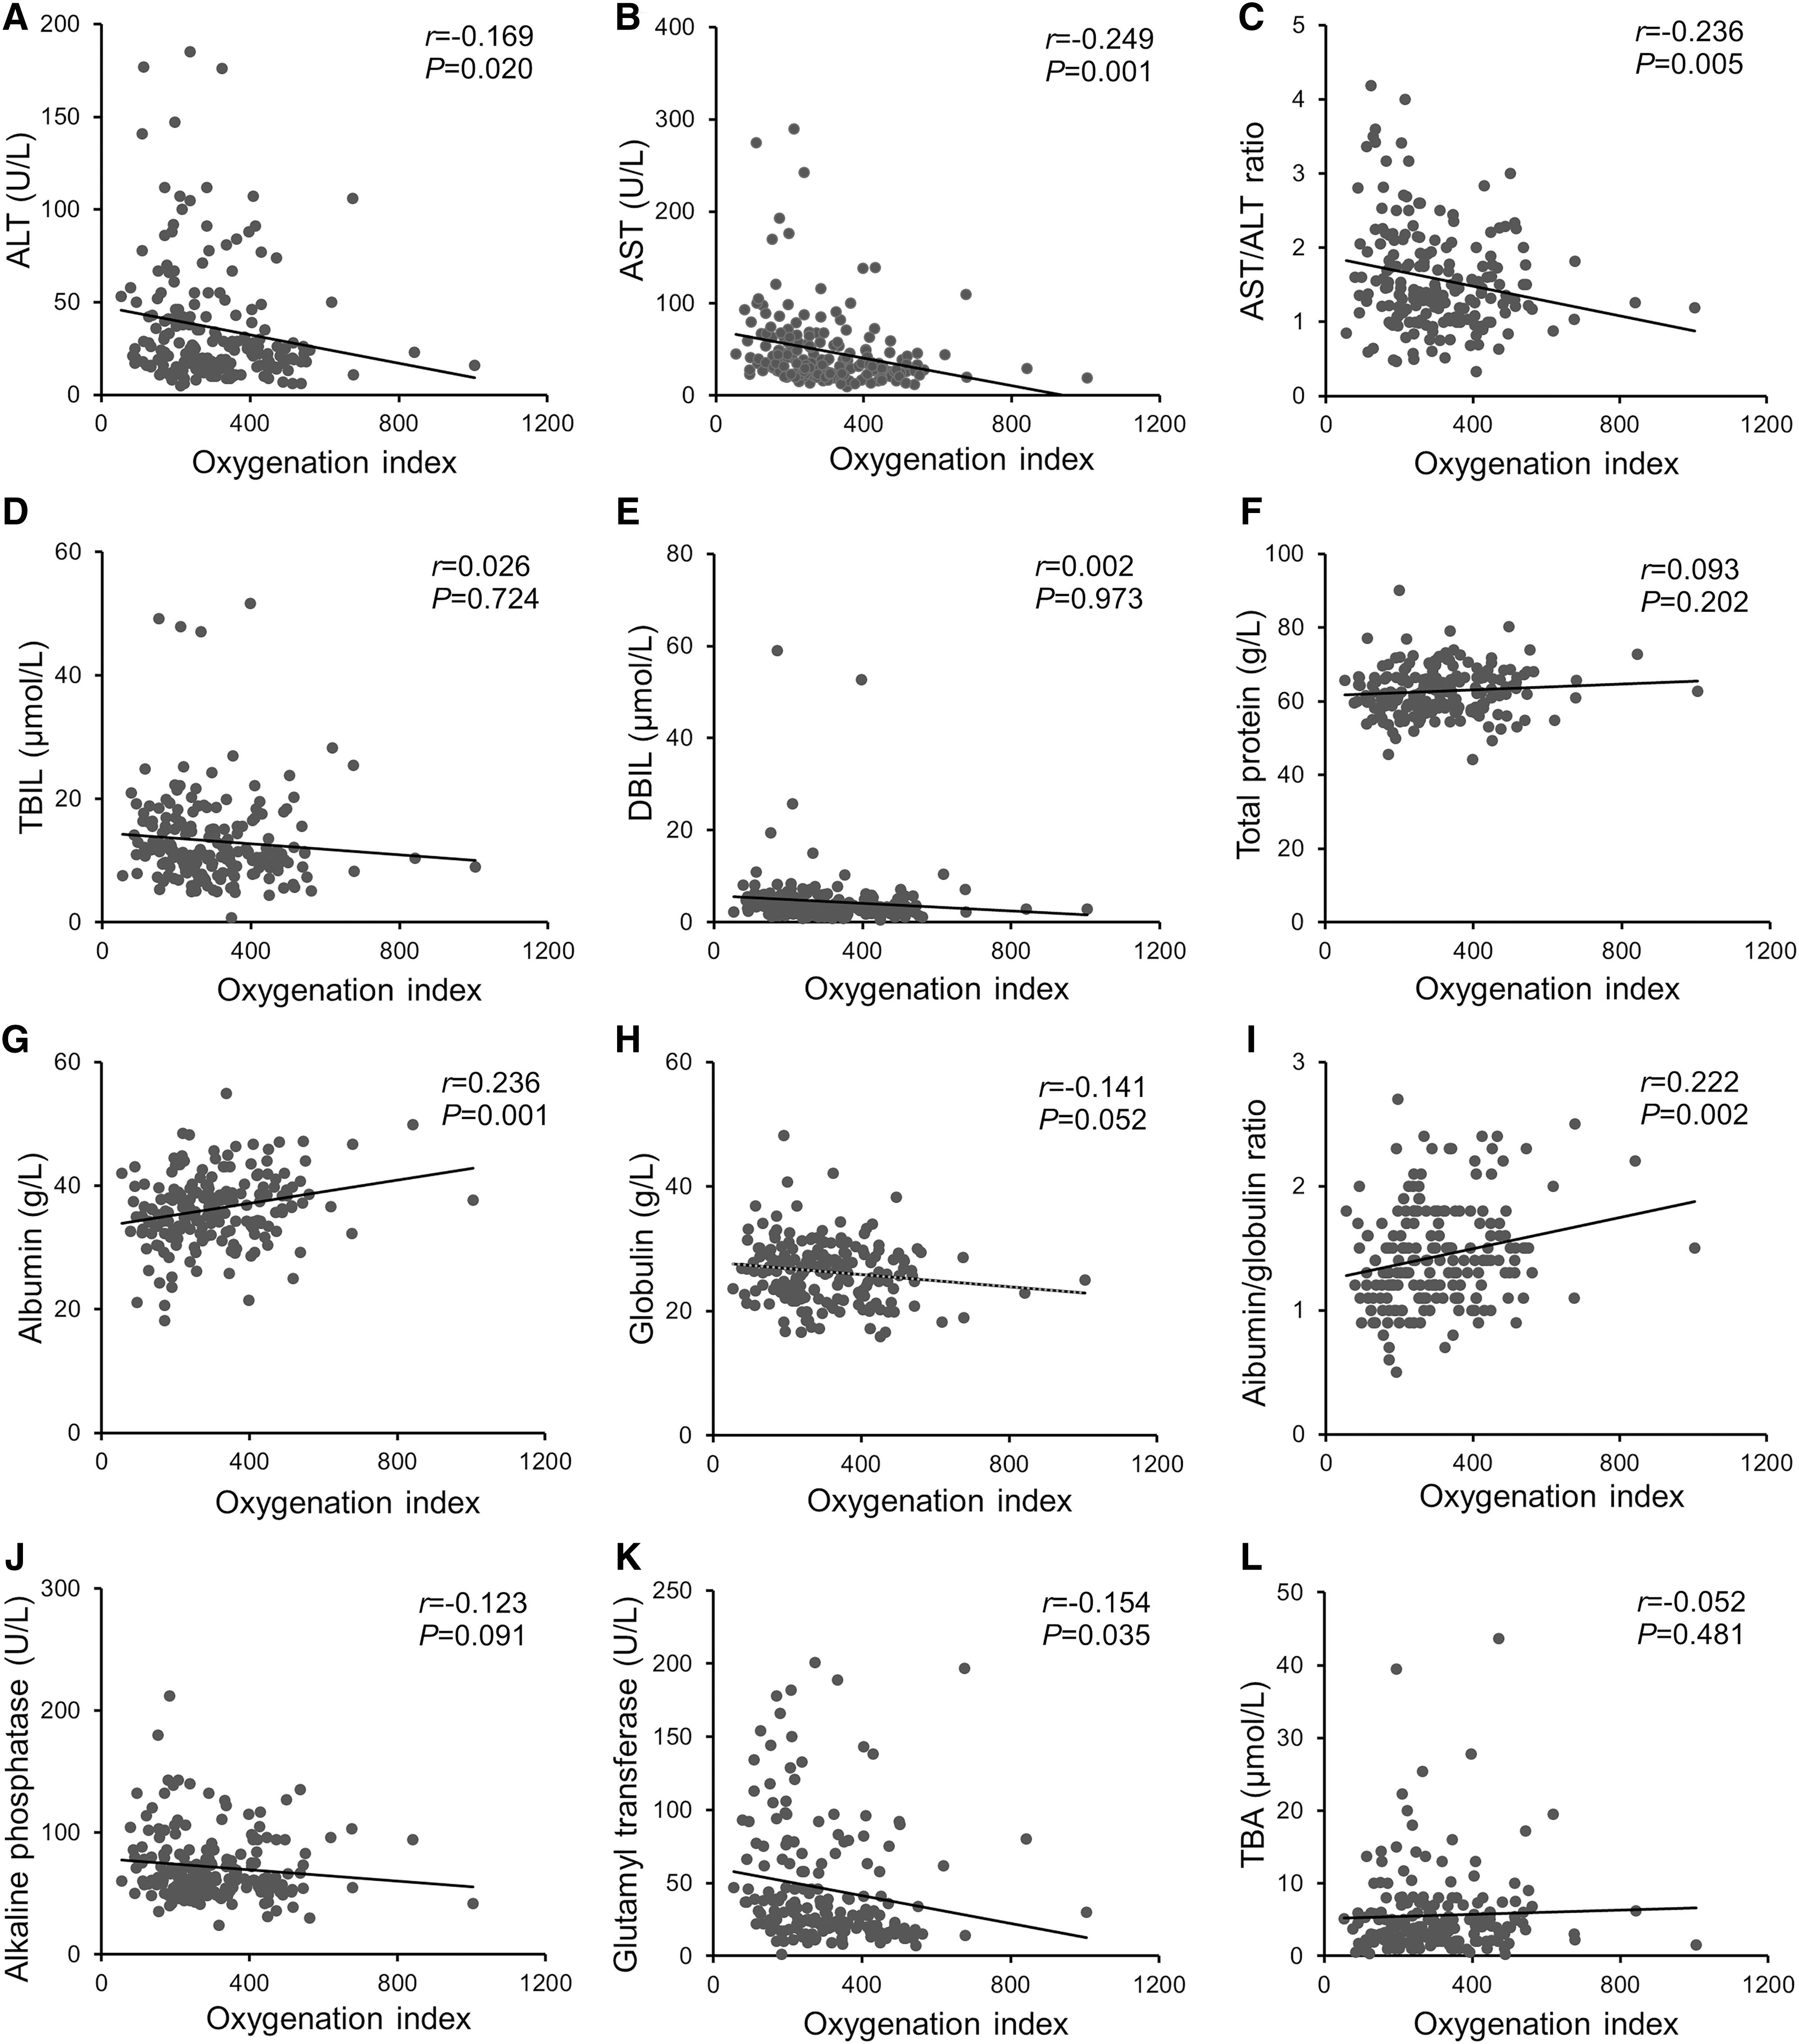 Association between oxygenation index and hepatic functional indices among COVID-19 patients.